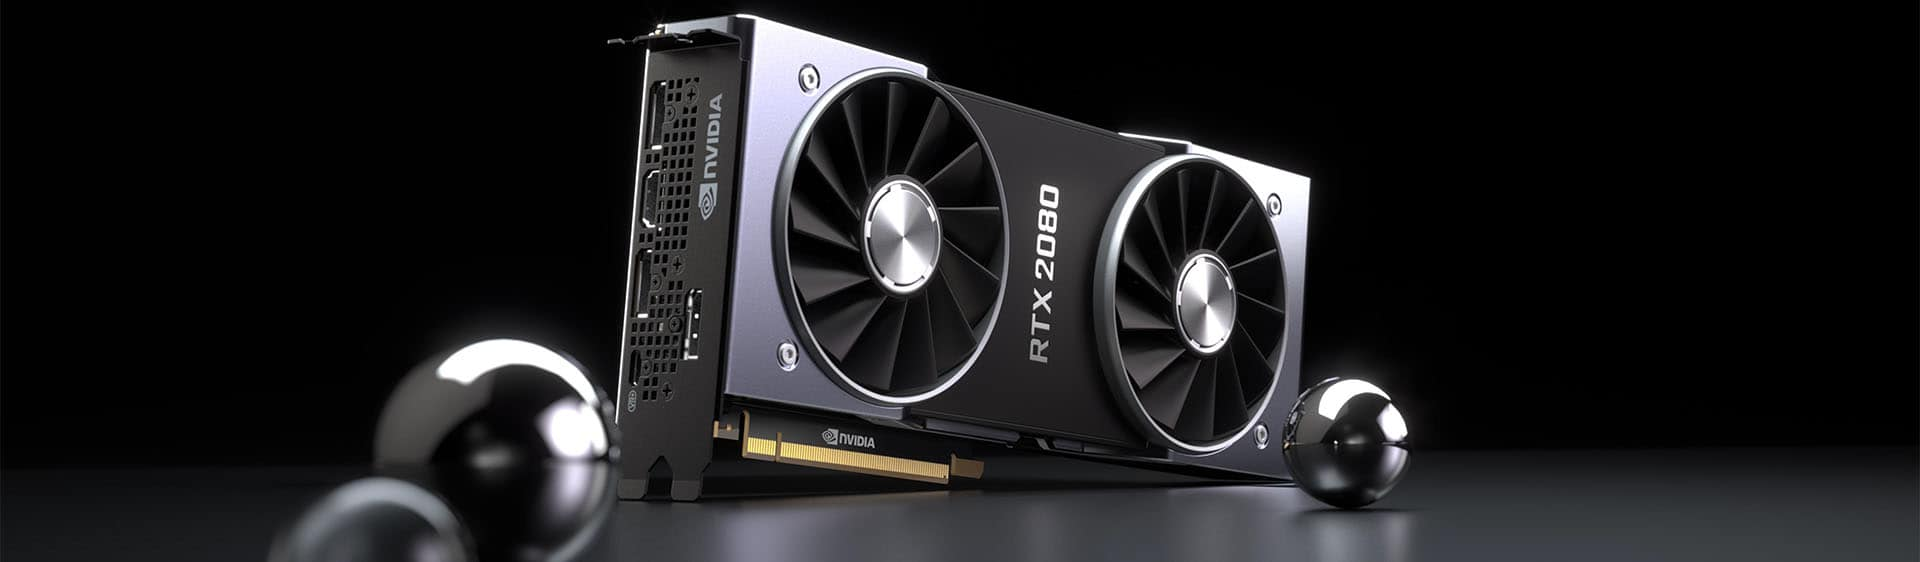 Should You Buy A Used Graphics Card?